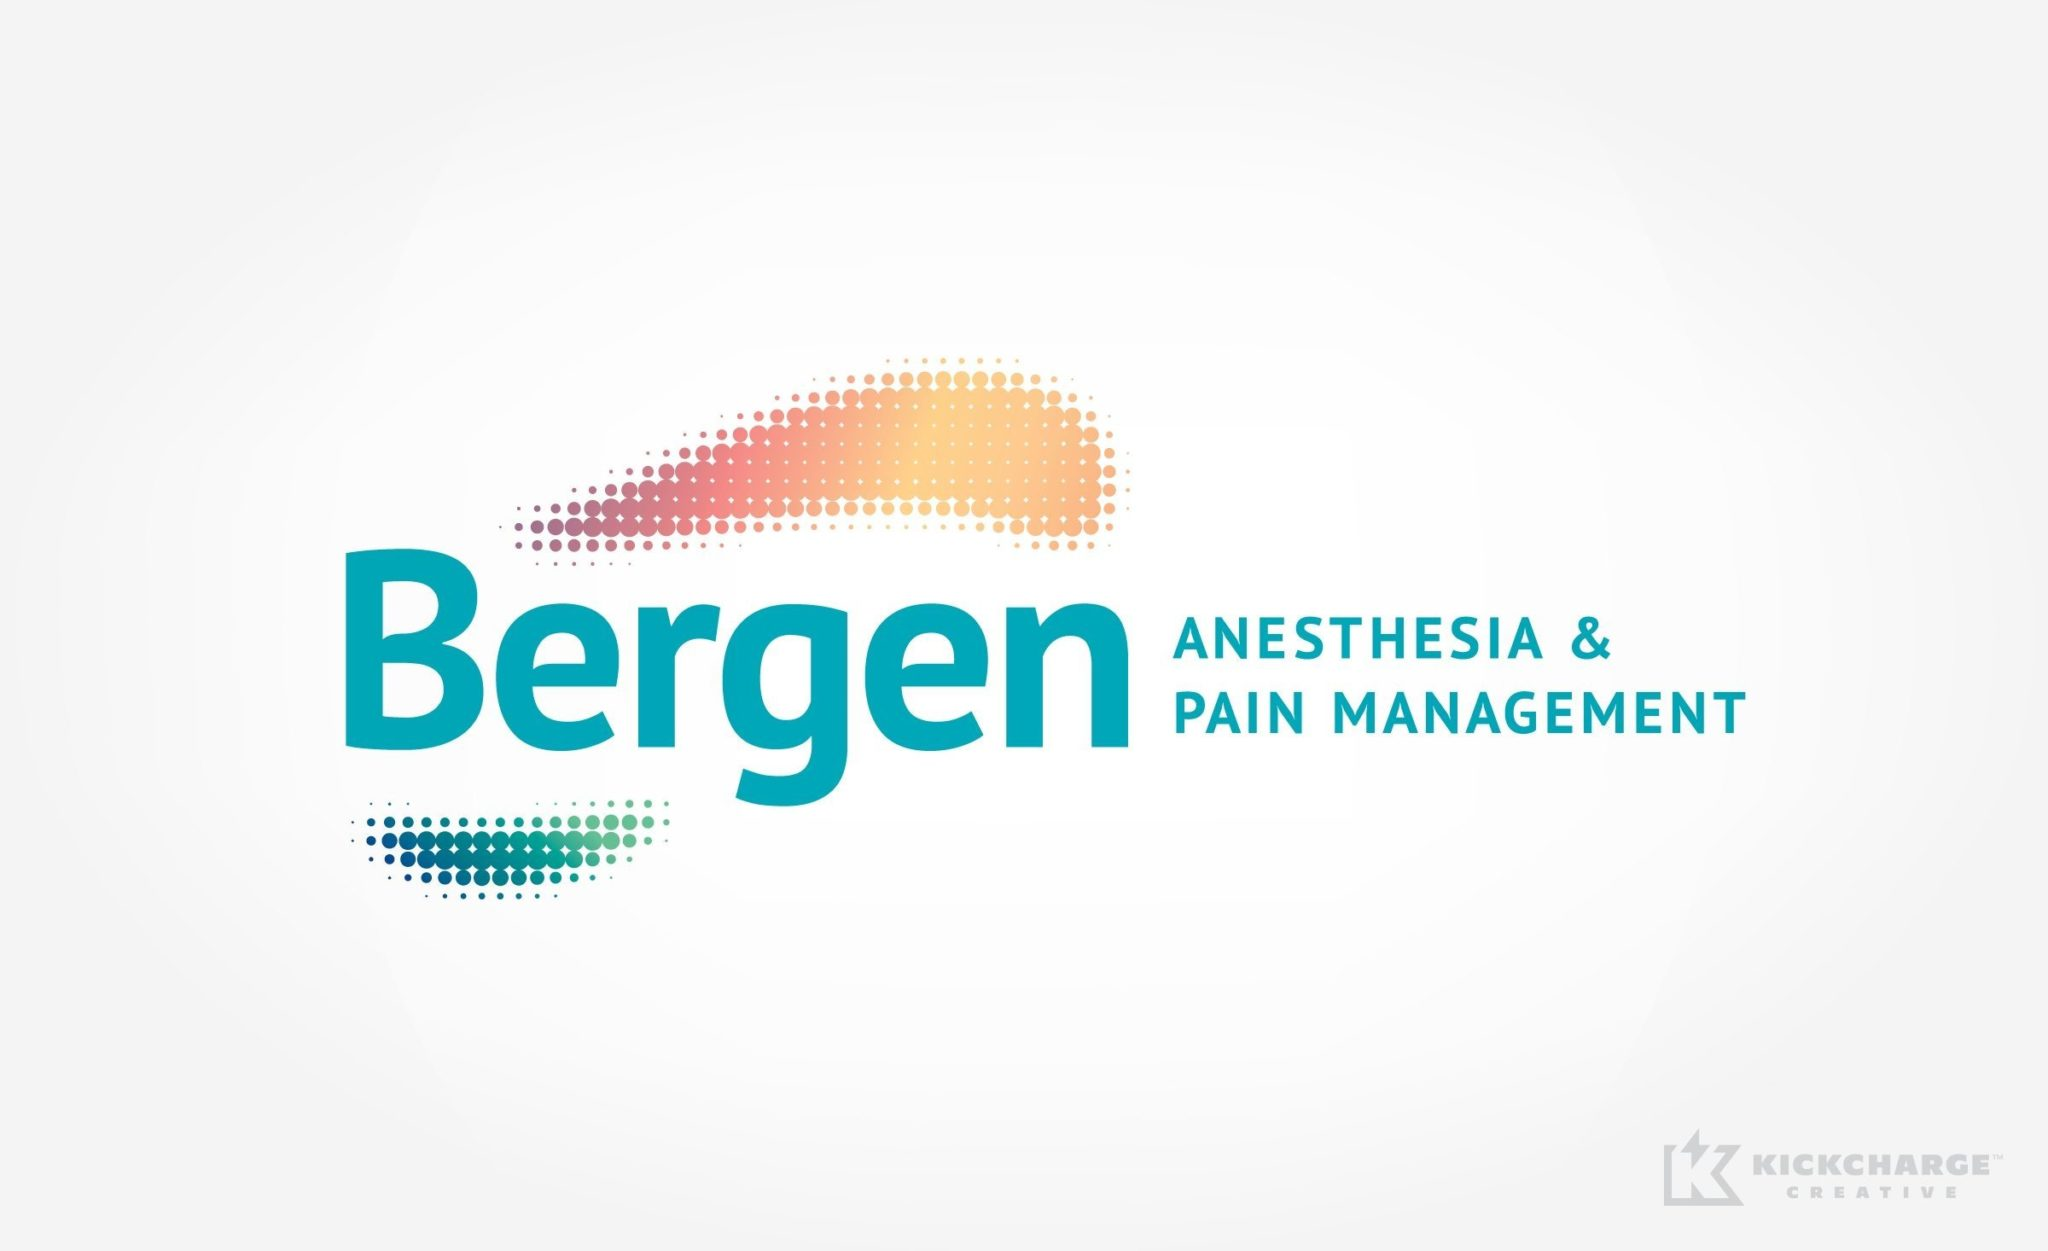 Bergen Anesthesia & Pain Management